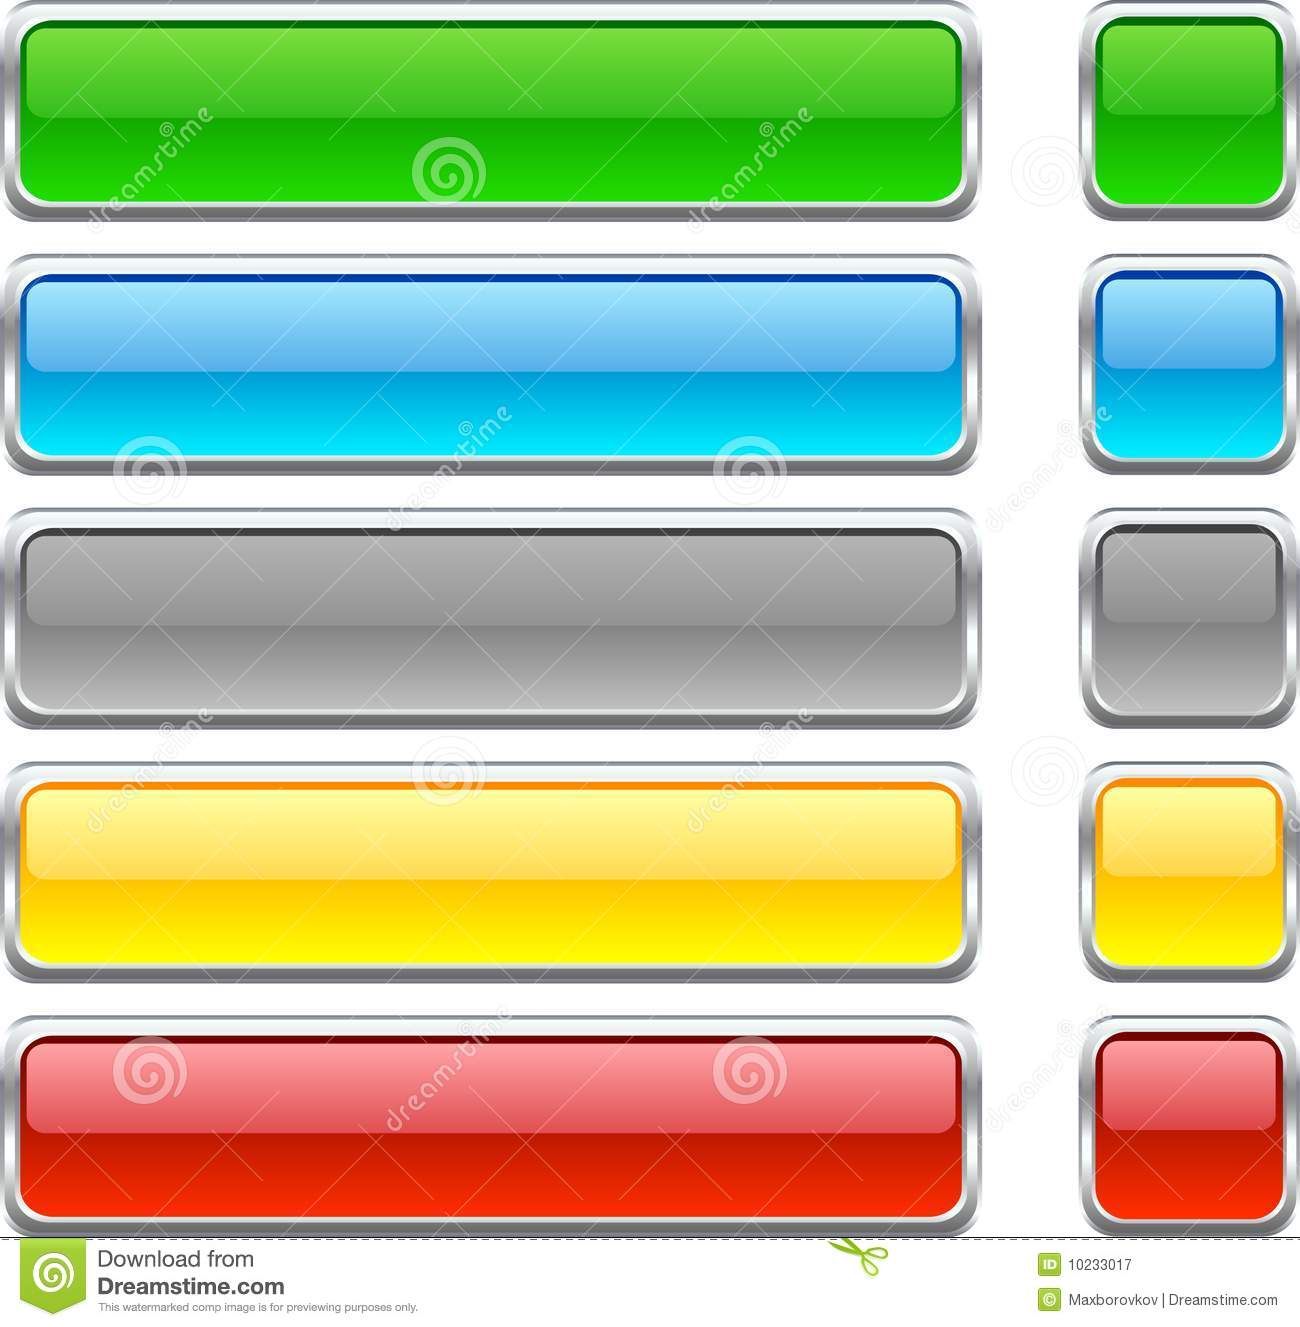 Web Buttons. Royalty Free Stock Photography - Image: 10233017